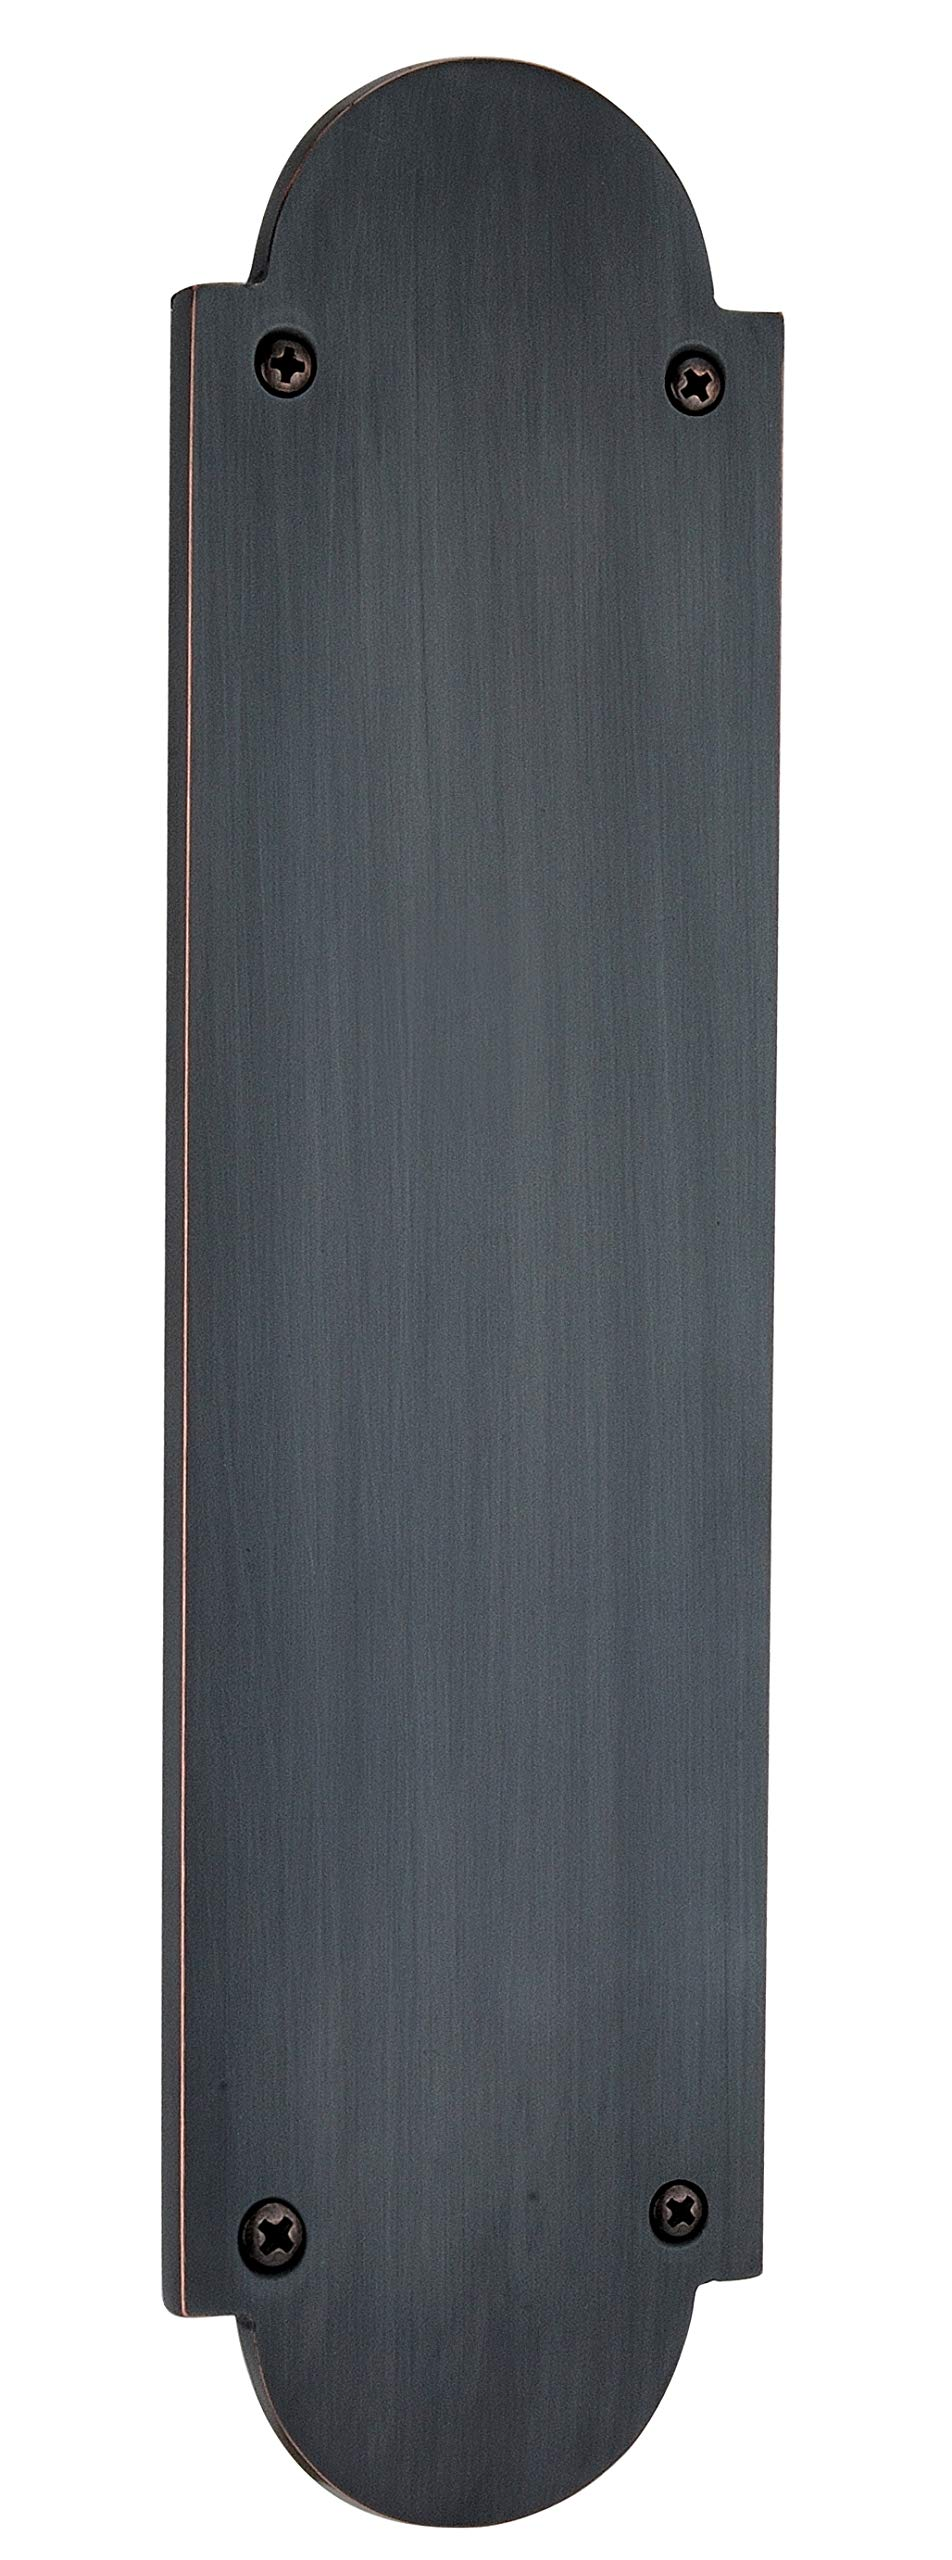 Knoxx Hardware Traditional Push Plate -3'' x 12'', Oil Rubbed Bronze